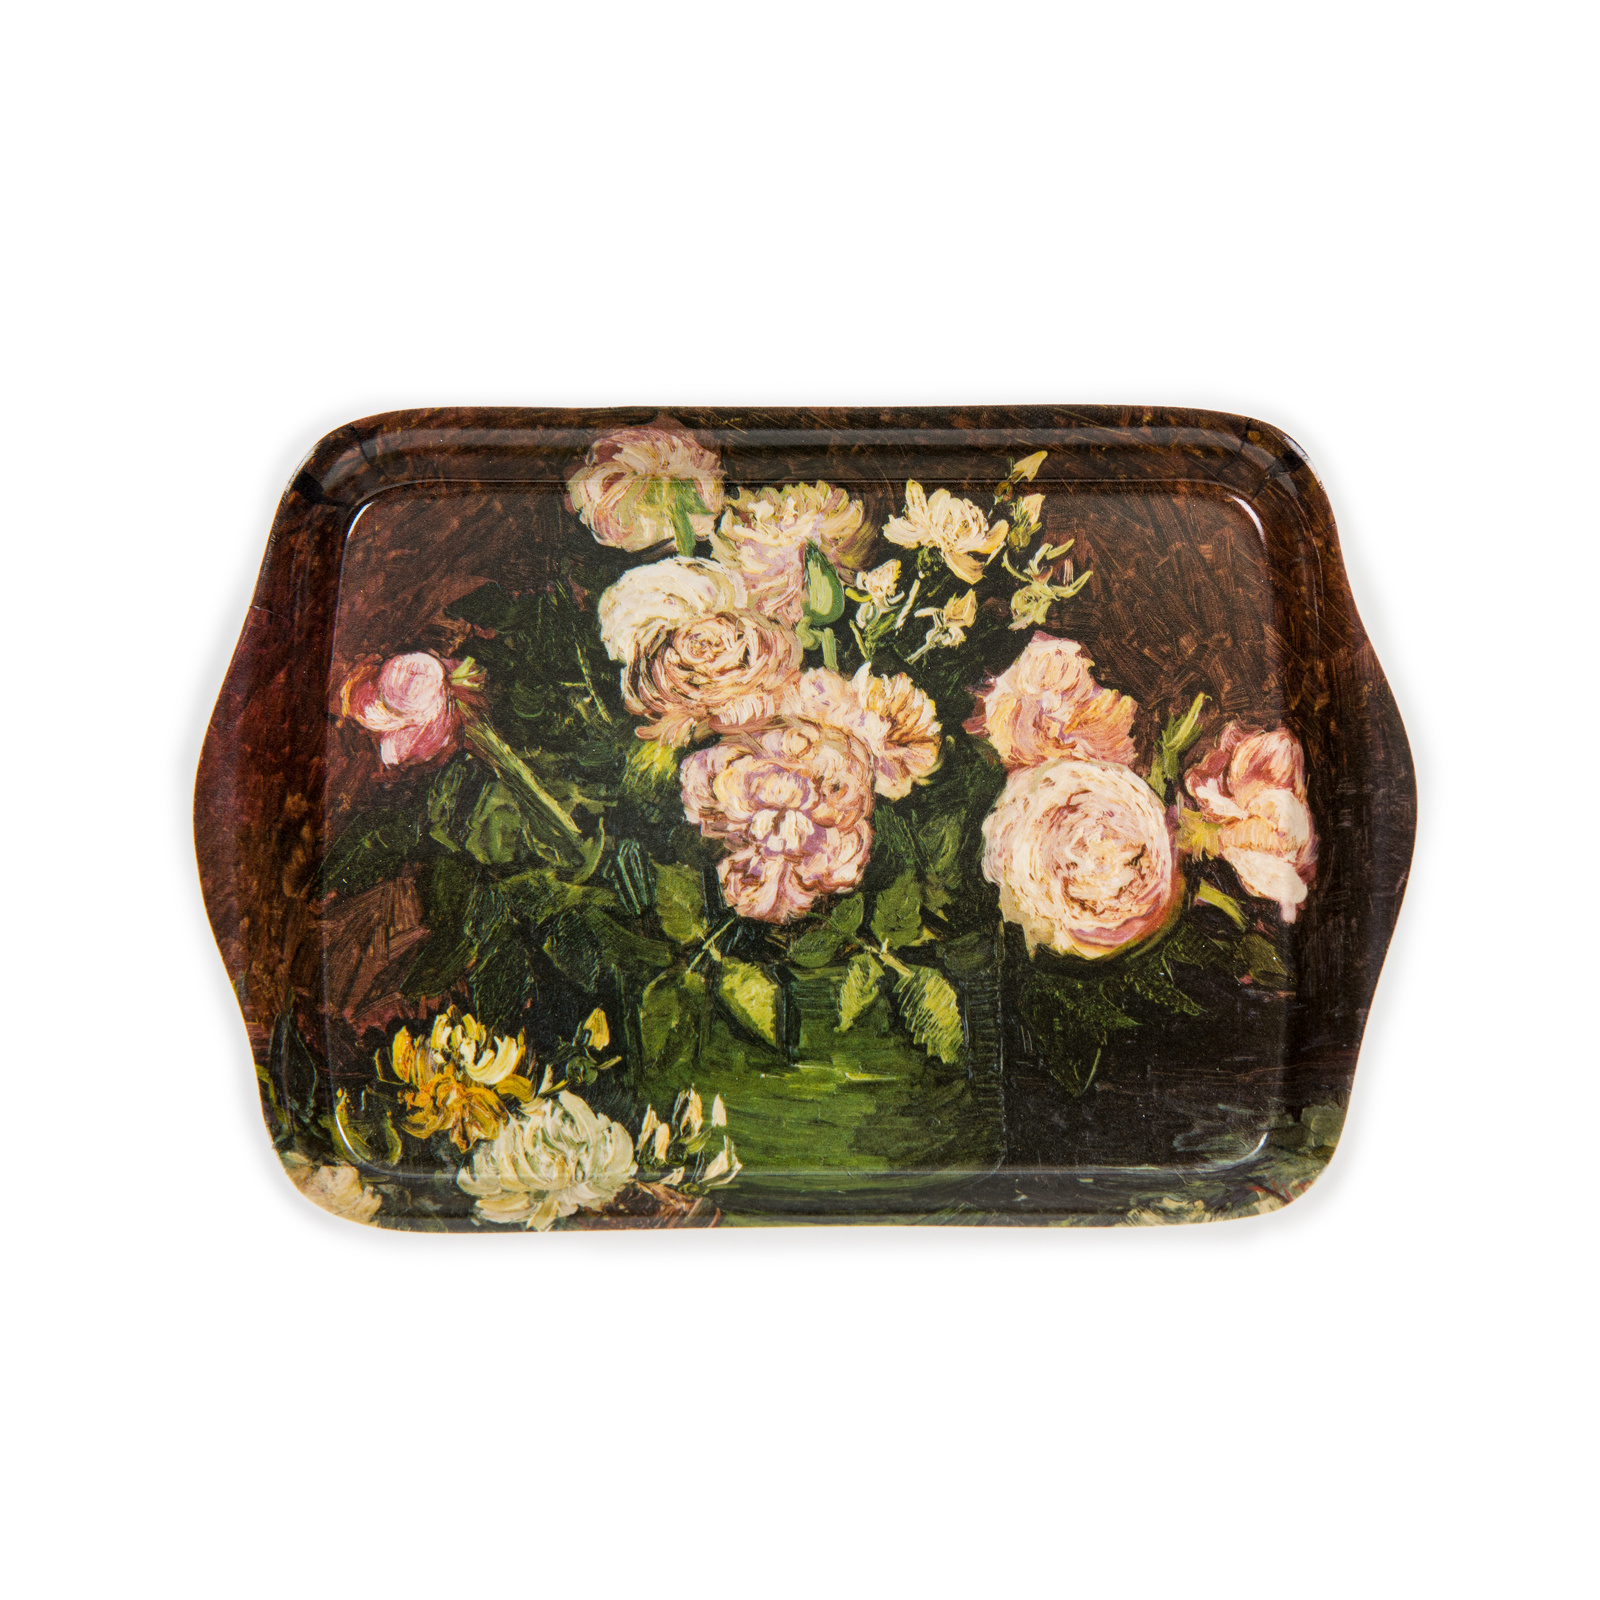 Mini Serving Tray - Roses and peonies